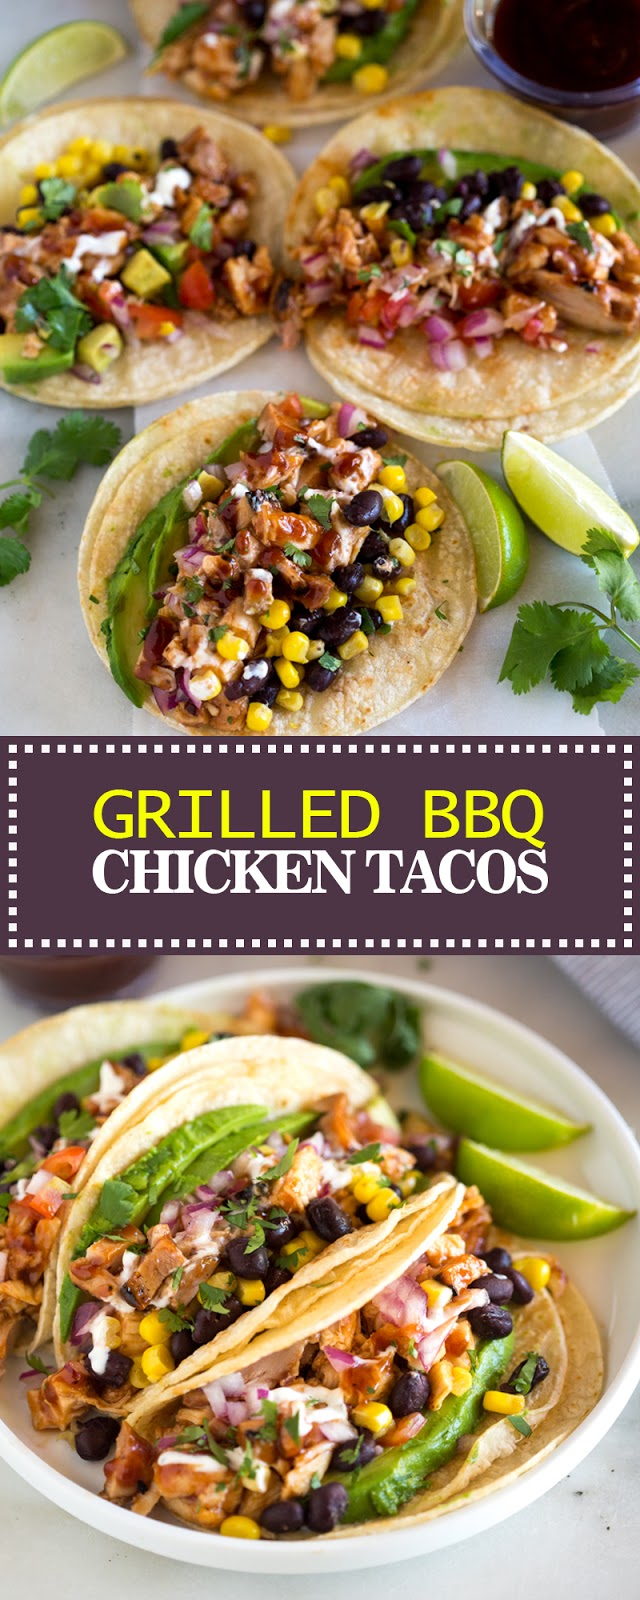 GRILLED BBQ CHICKEN TACOS